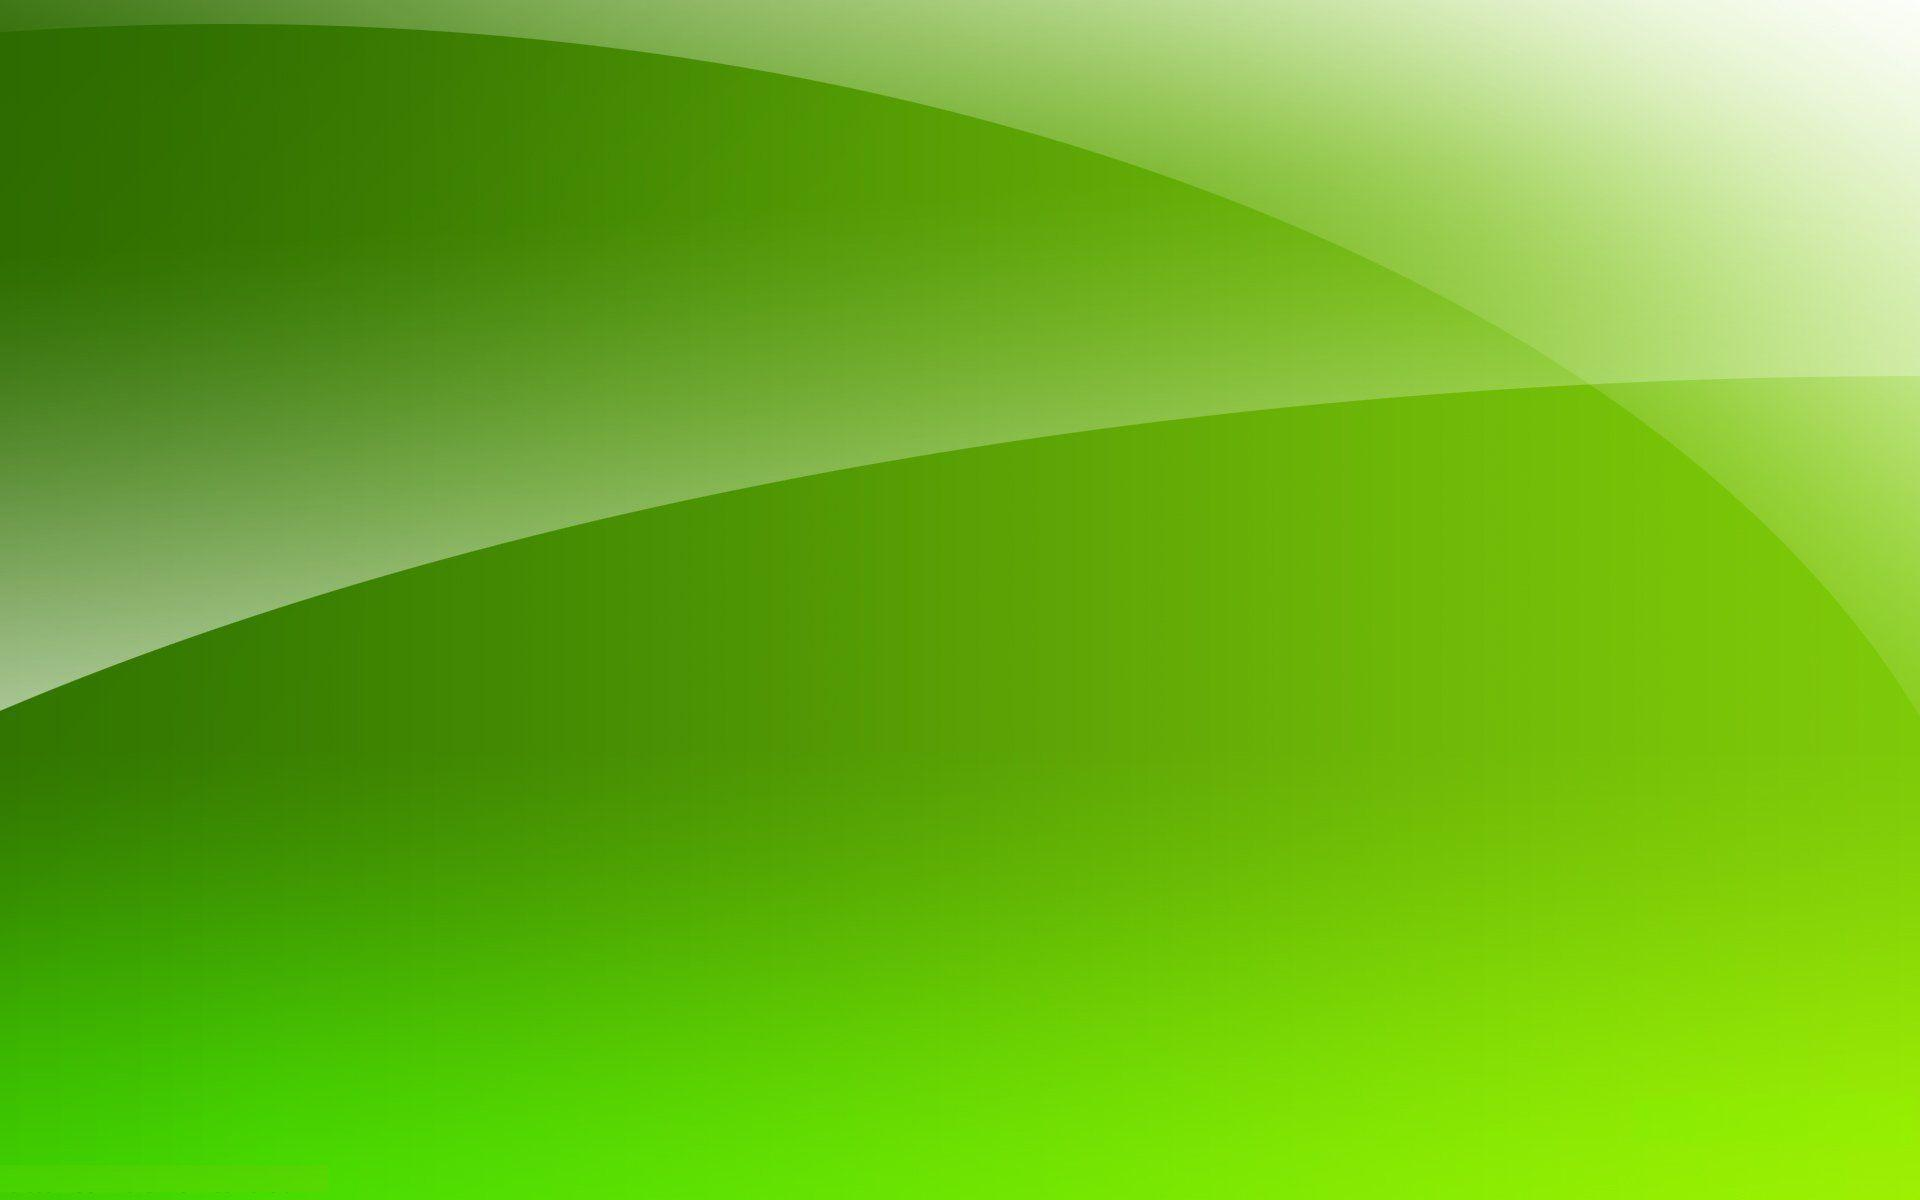 green background hd 3d - photo #7